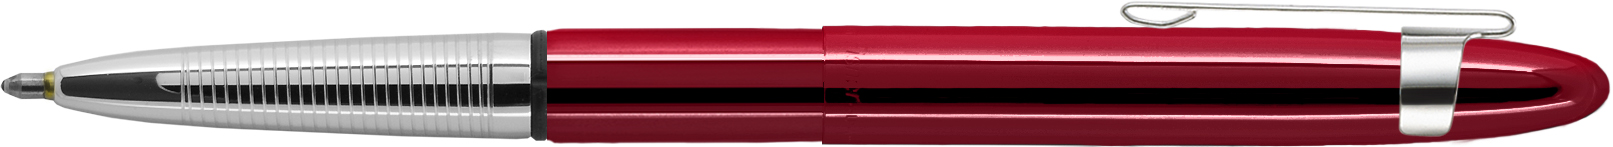 400RCCL - FISHER Red Cherry Translucent Bullet Space Pen w/ Chrome Clip Gift Boxed